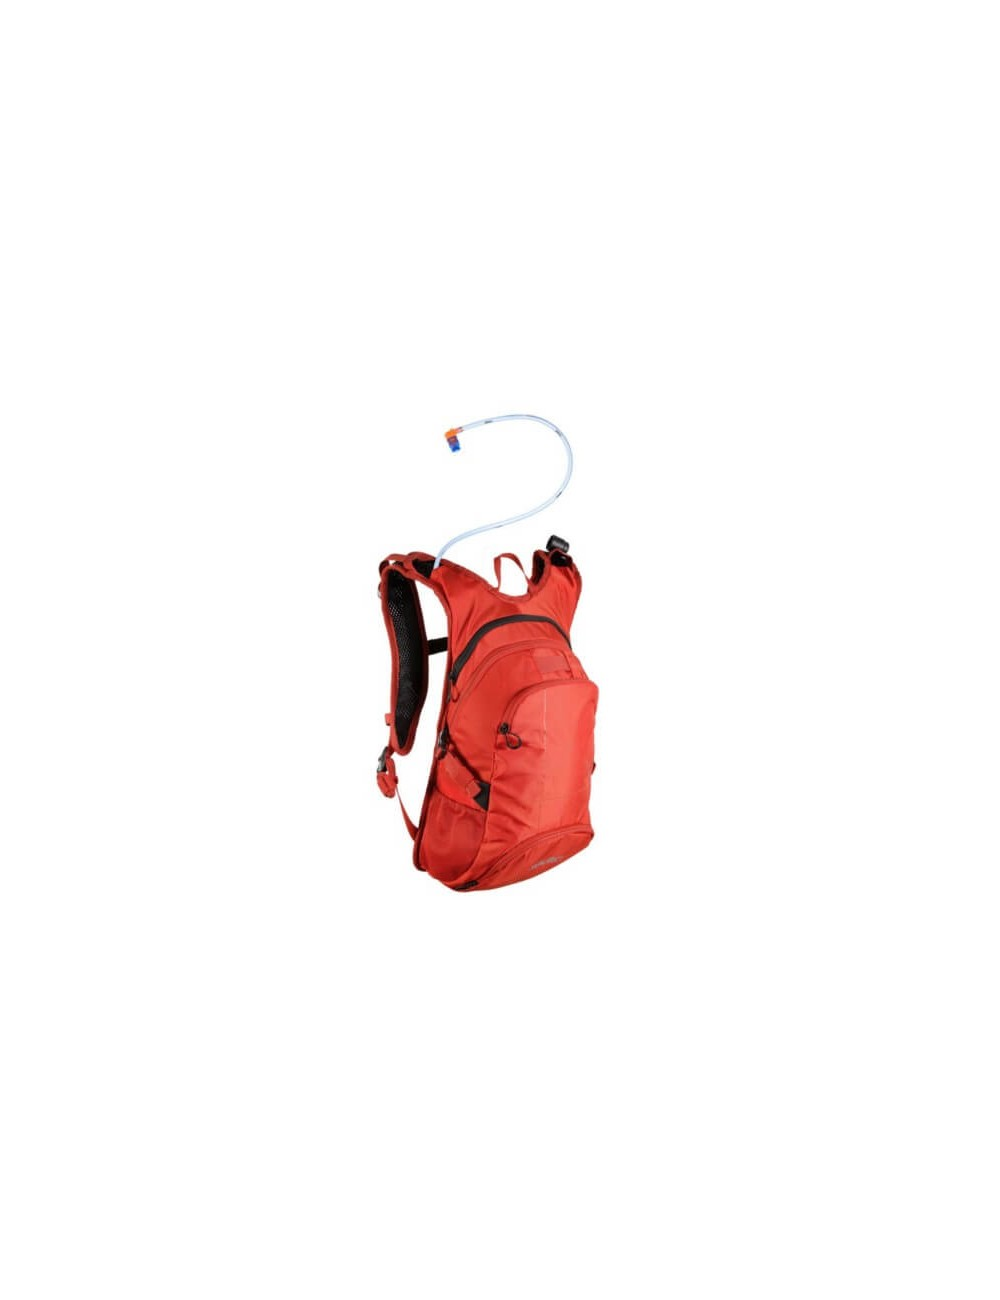 Source hydration pack Fuse 3 + 9 liter rugzak - Chili Orange - Oranje